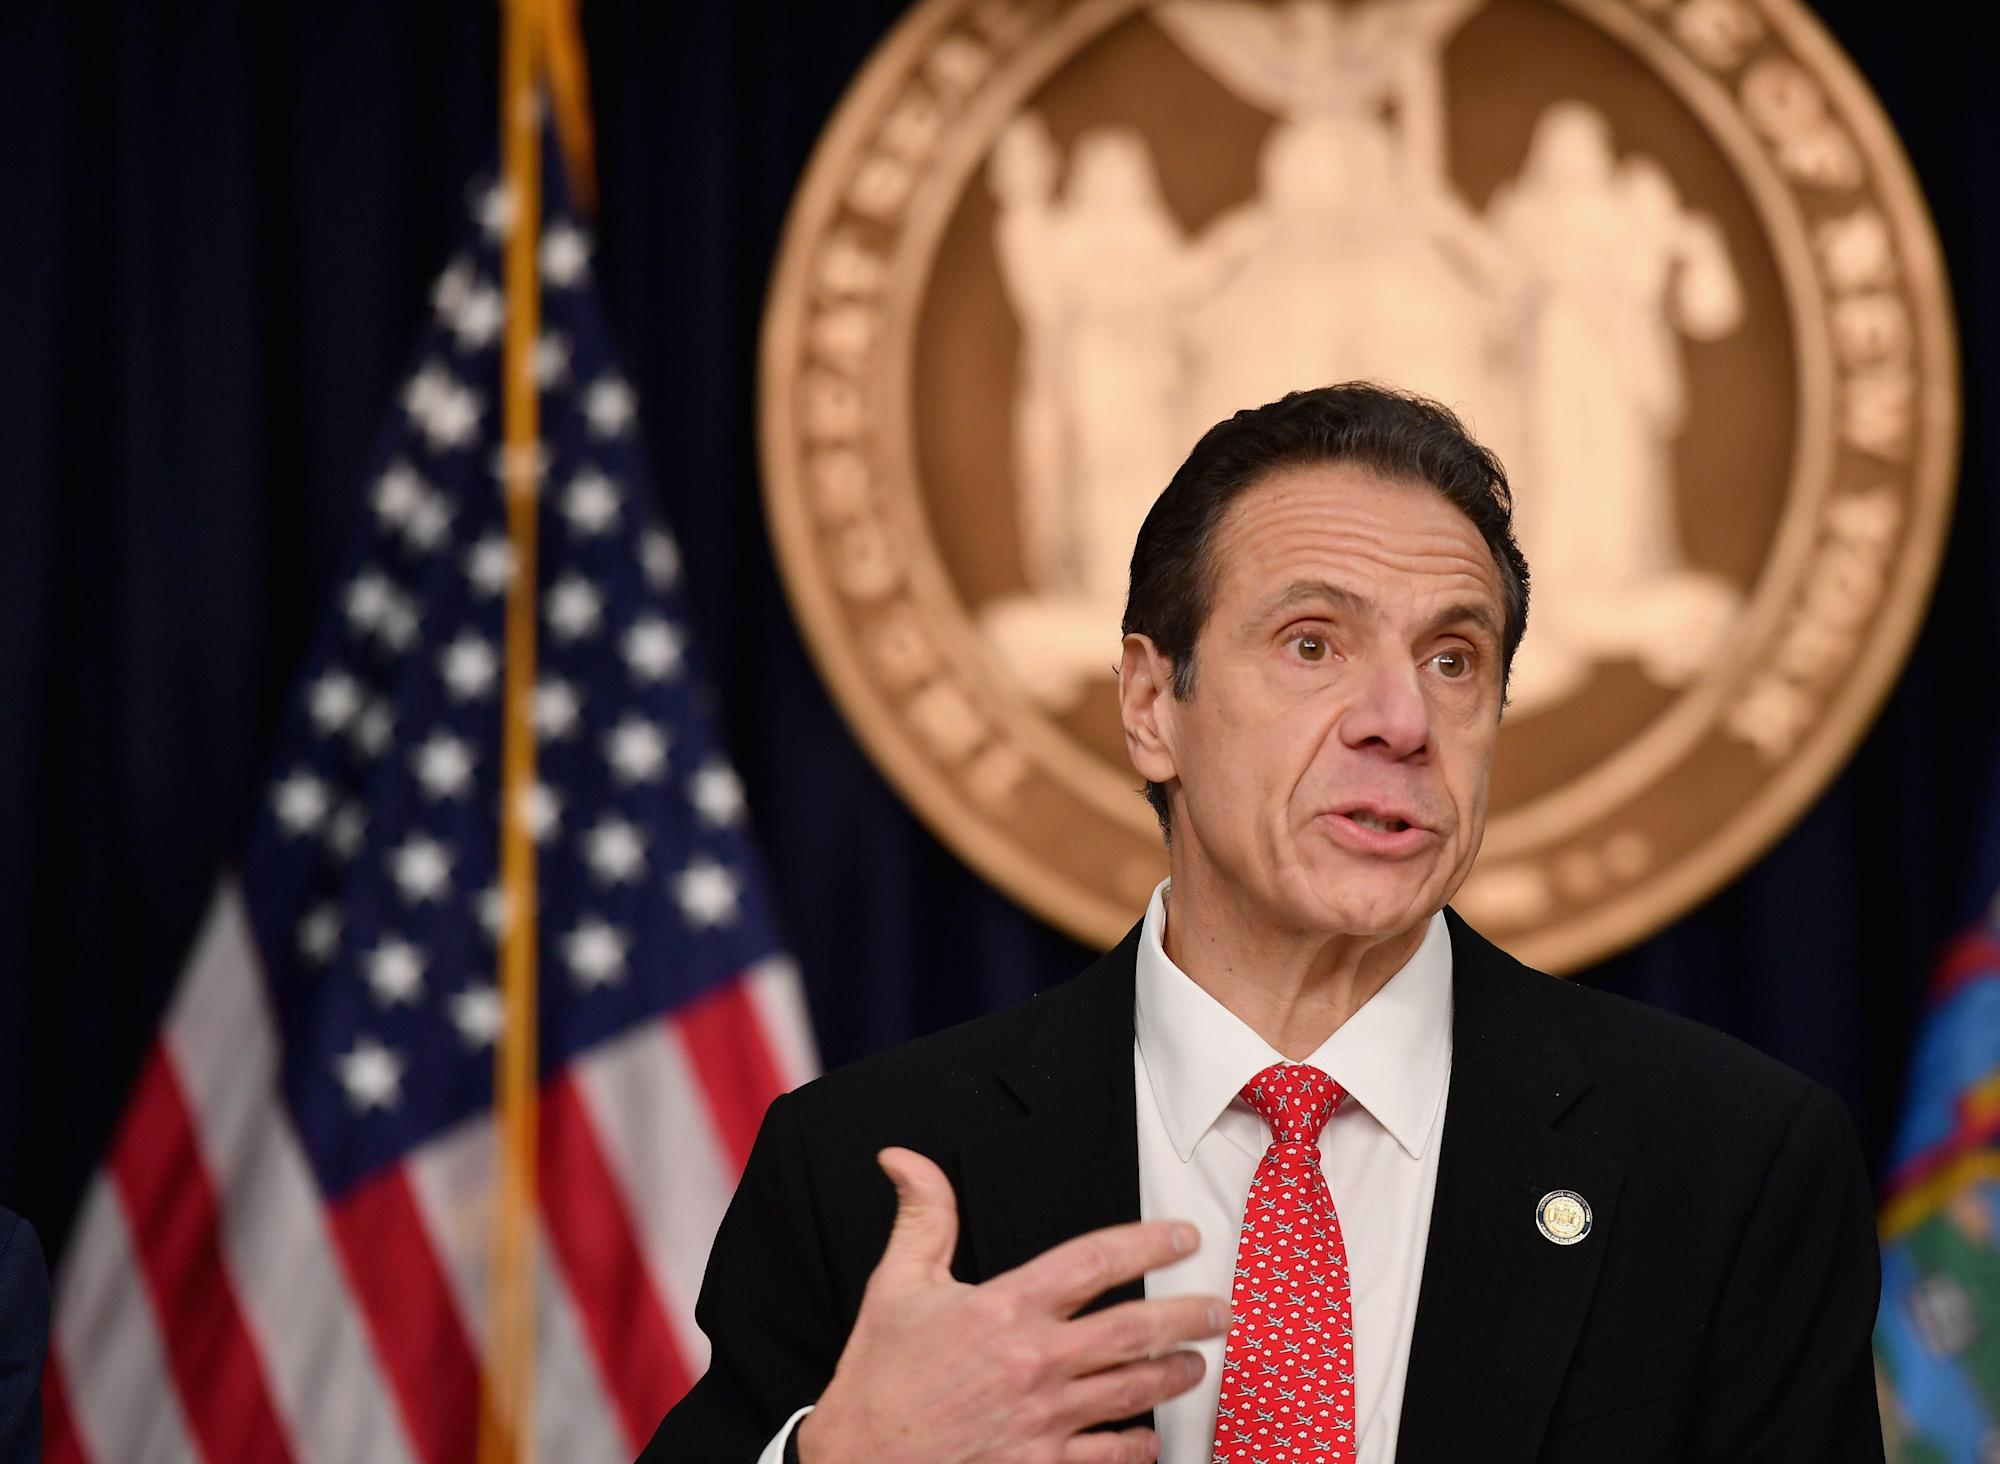 Fact check: New York Gov. Andrew Cuomo faces impeachment calls over handling of nursing home COVID-19 data